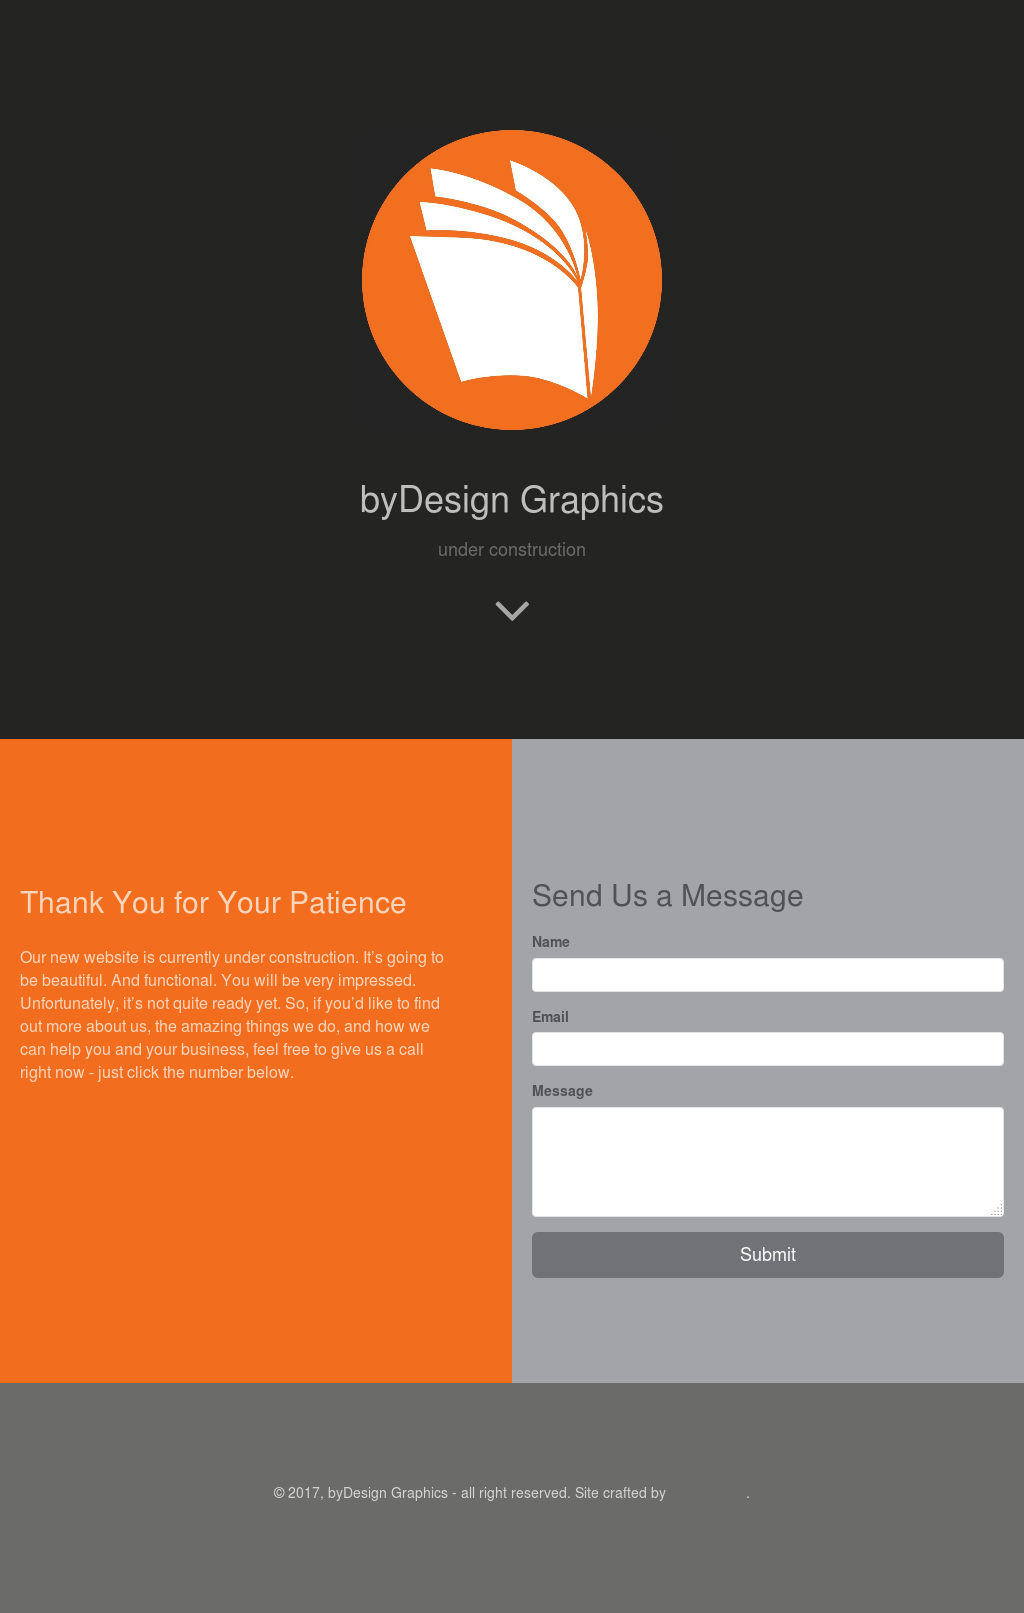 byDesign Graphics & Print Competitors, Revenue and Employees